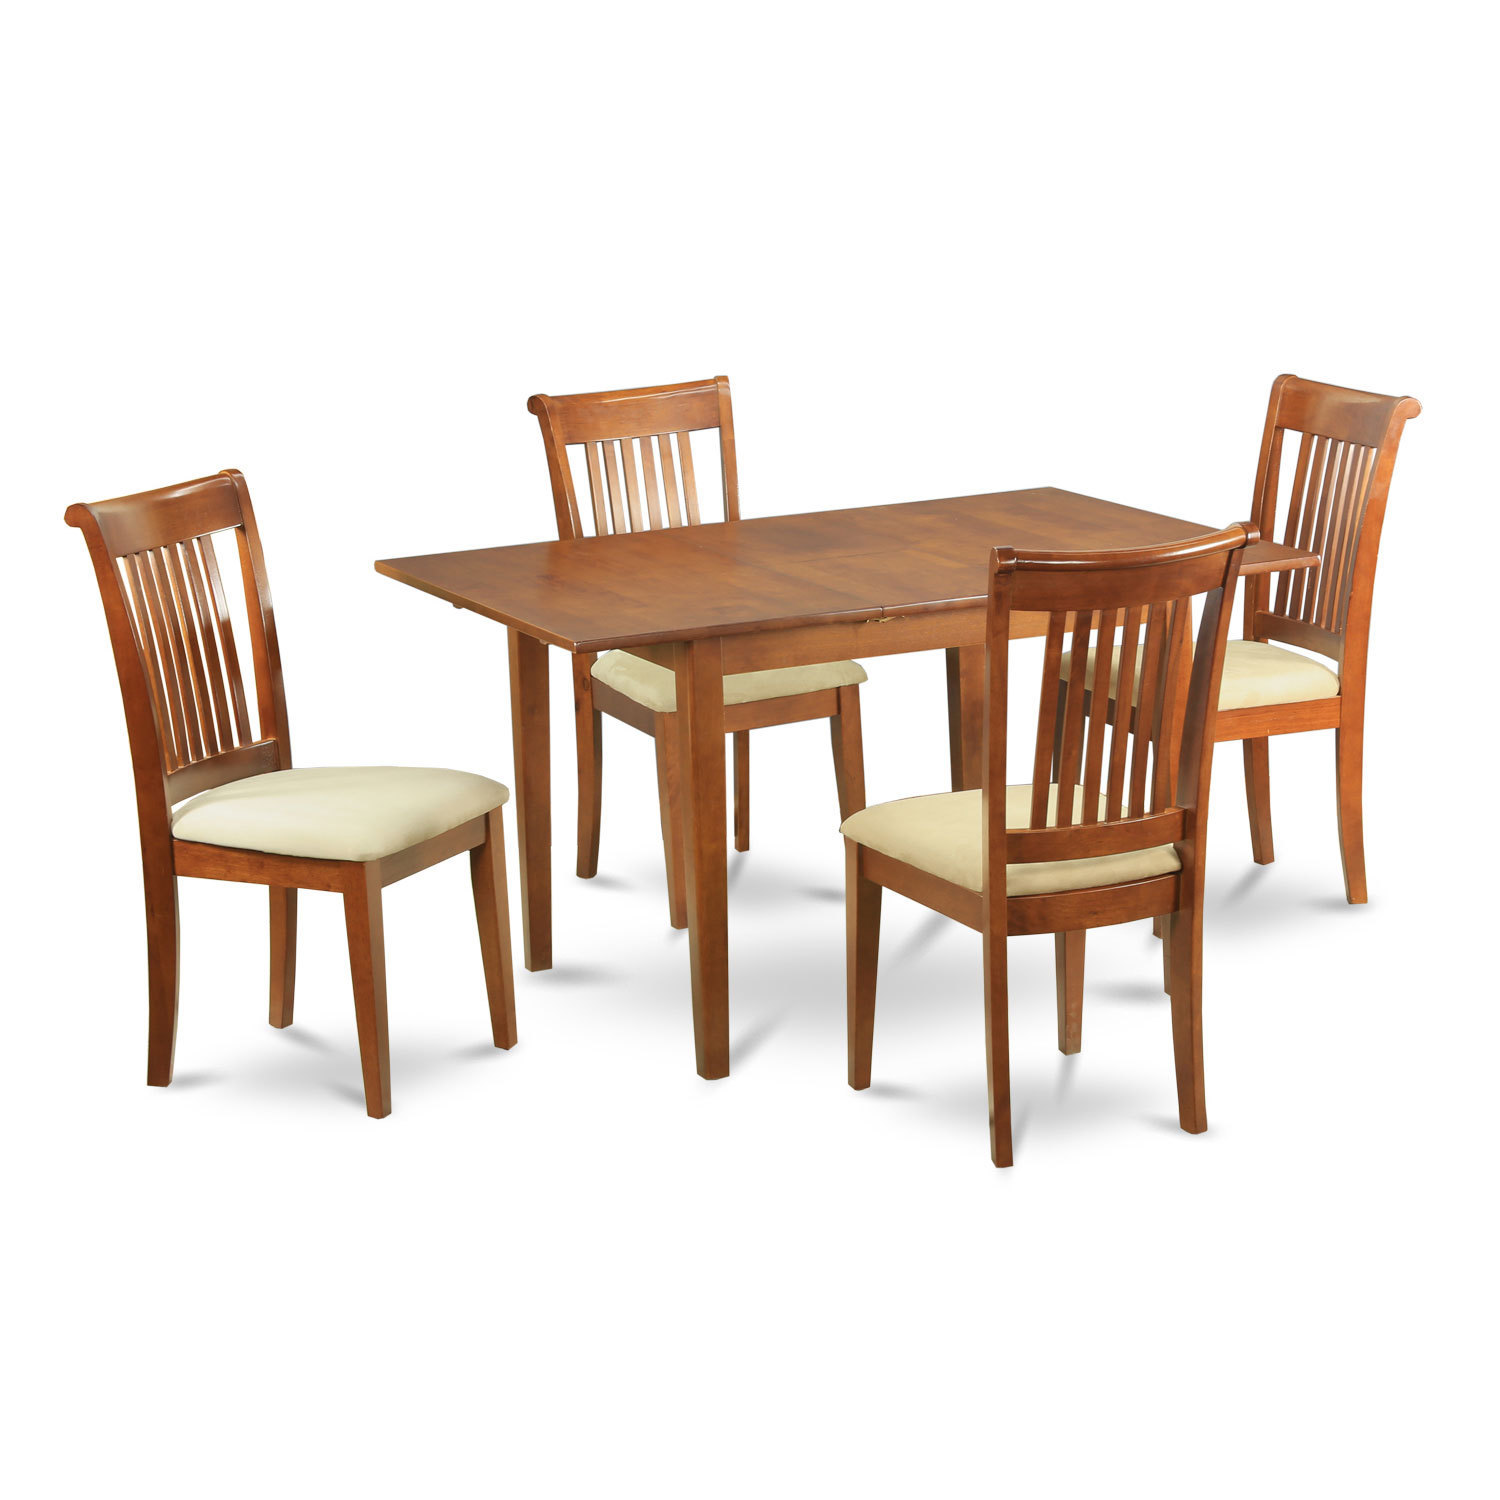 small table and chairs set queen anne mahogany dining dinette design homesfeed